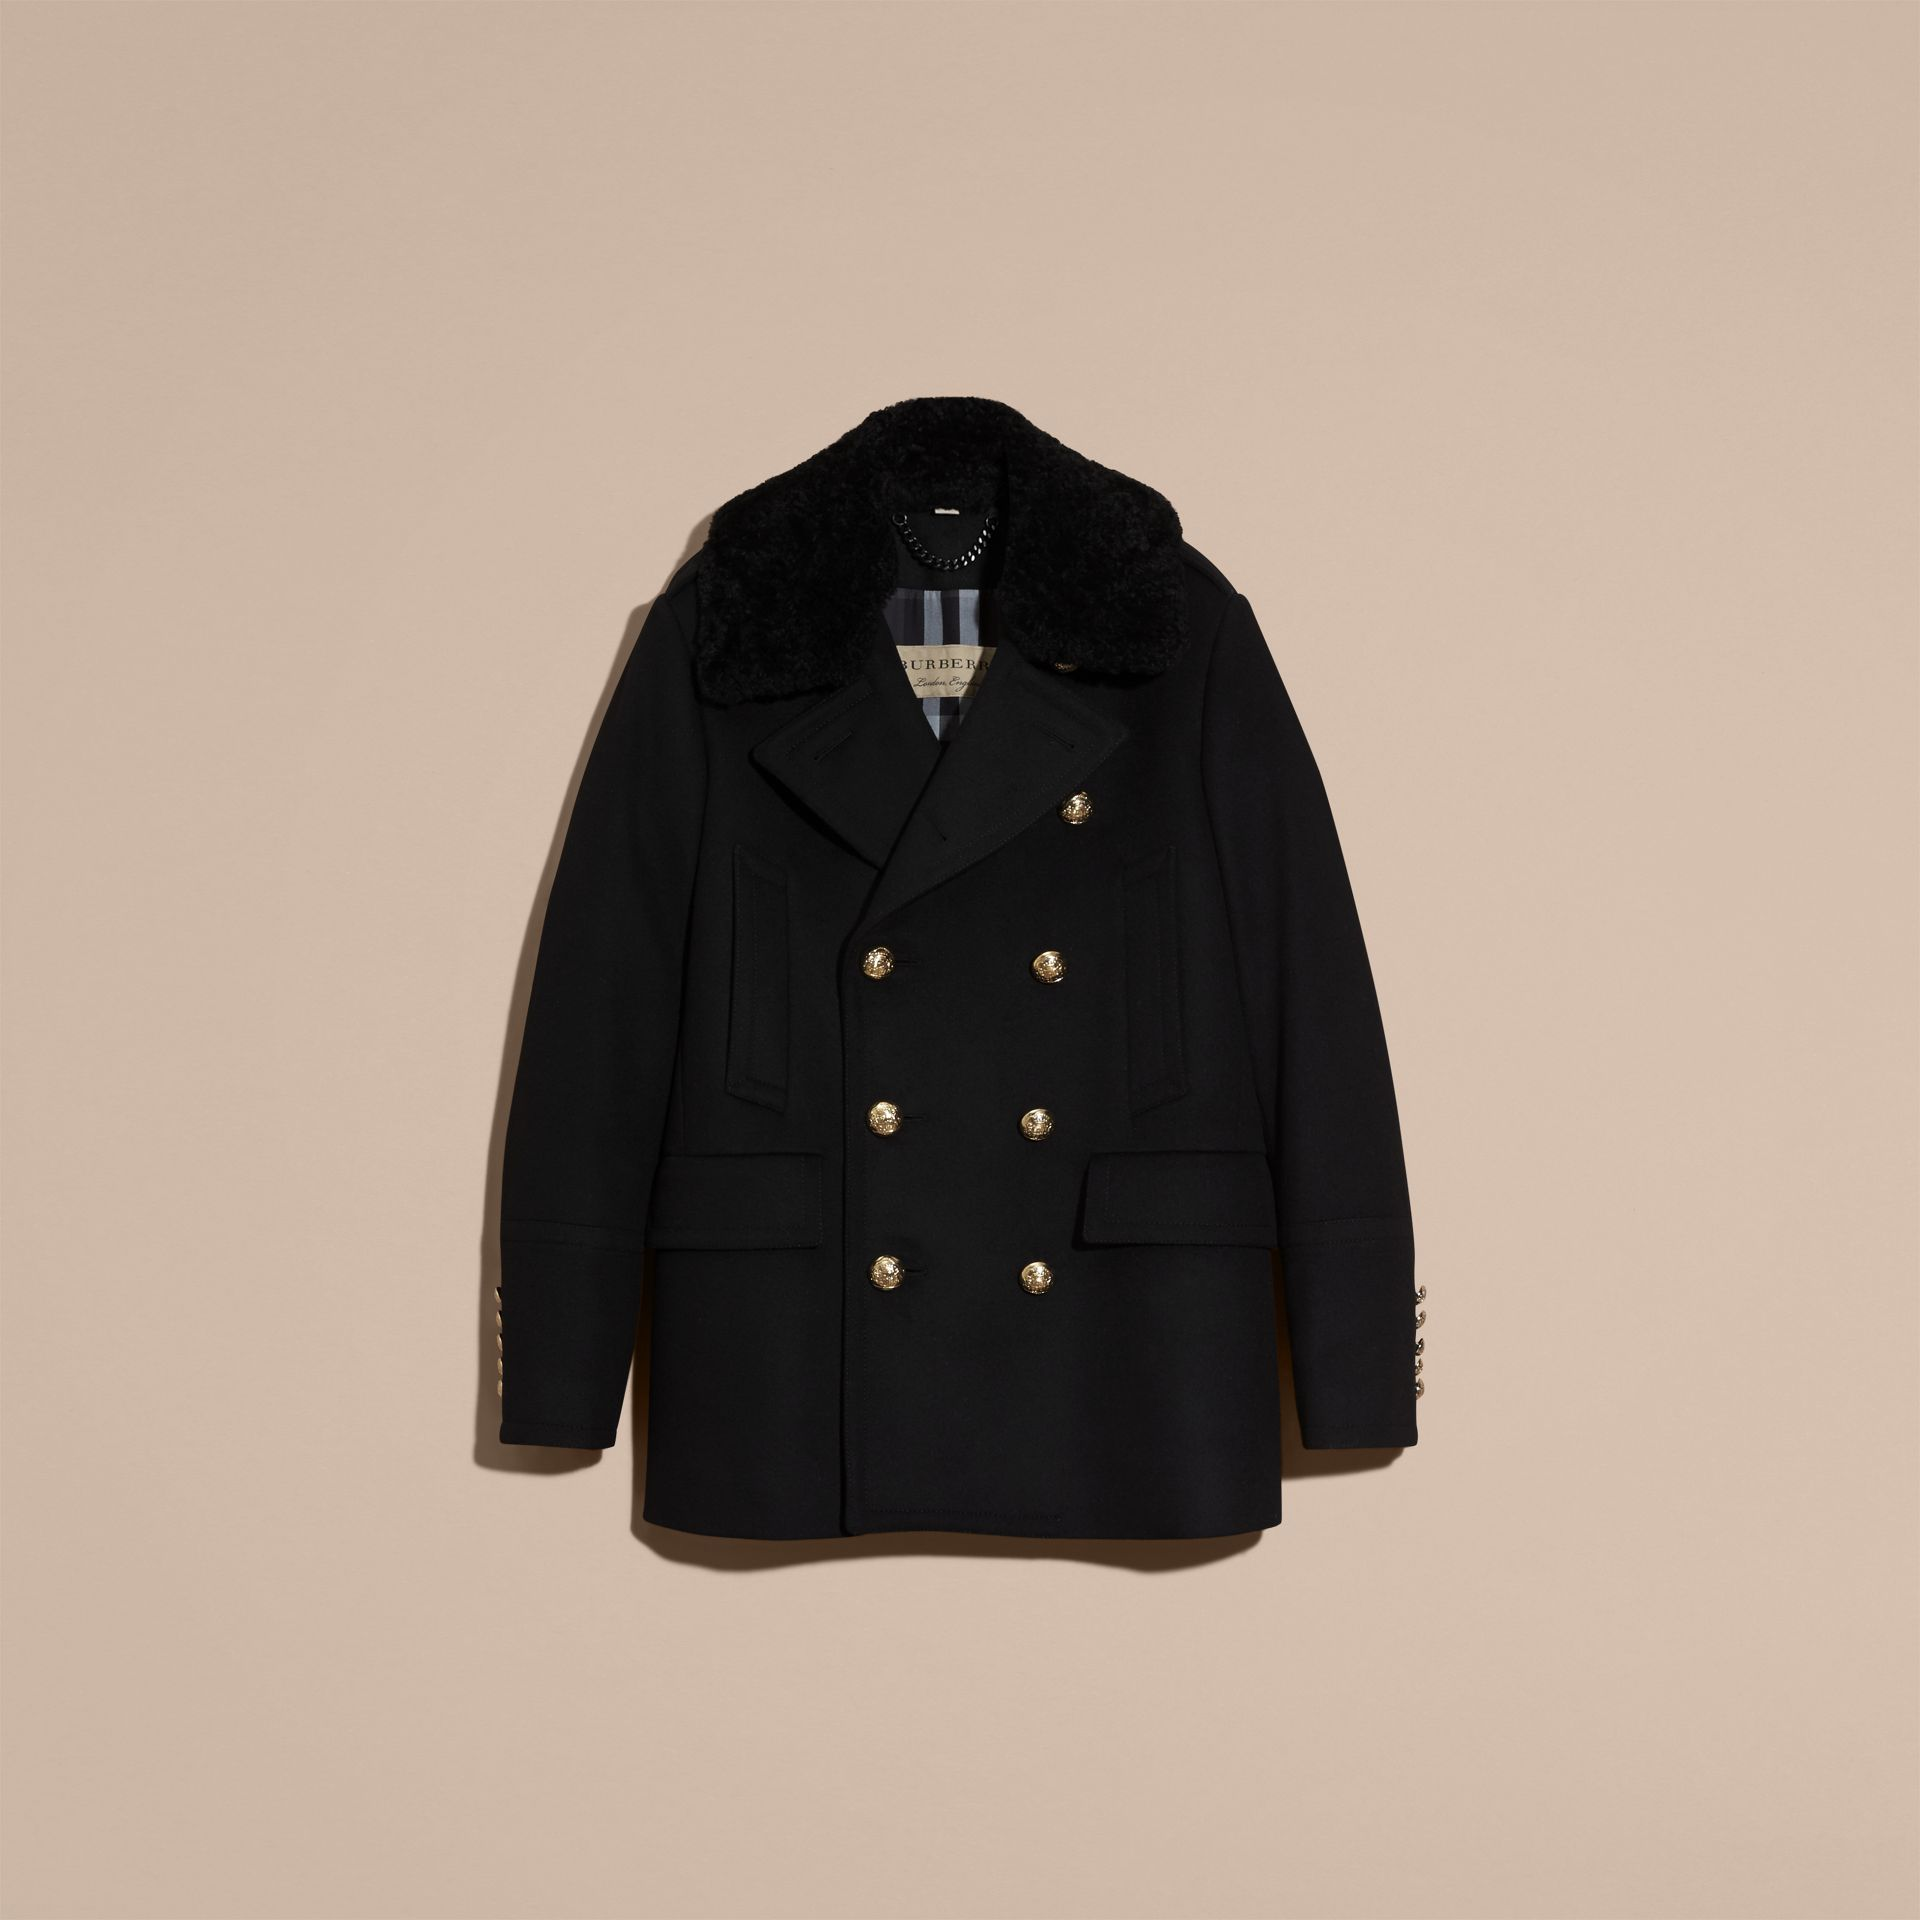 Black Military Pea Coat with Detachable Shearling Collar - gallery image 4